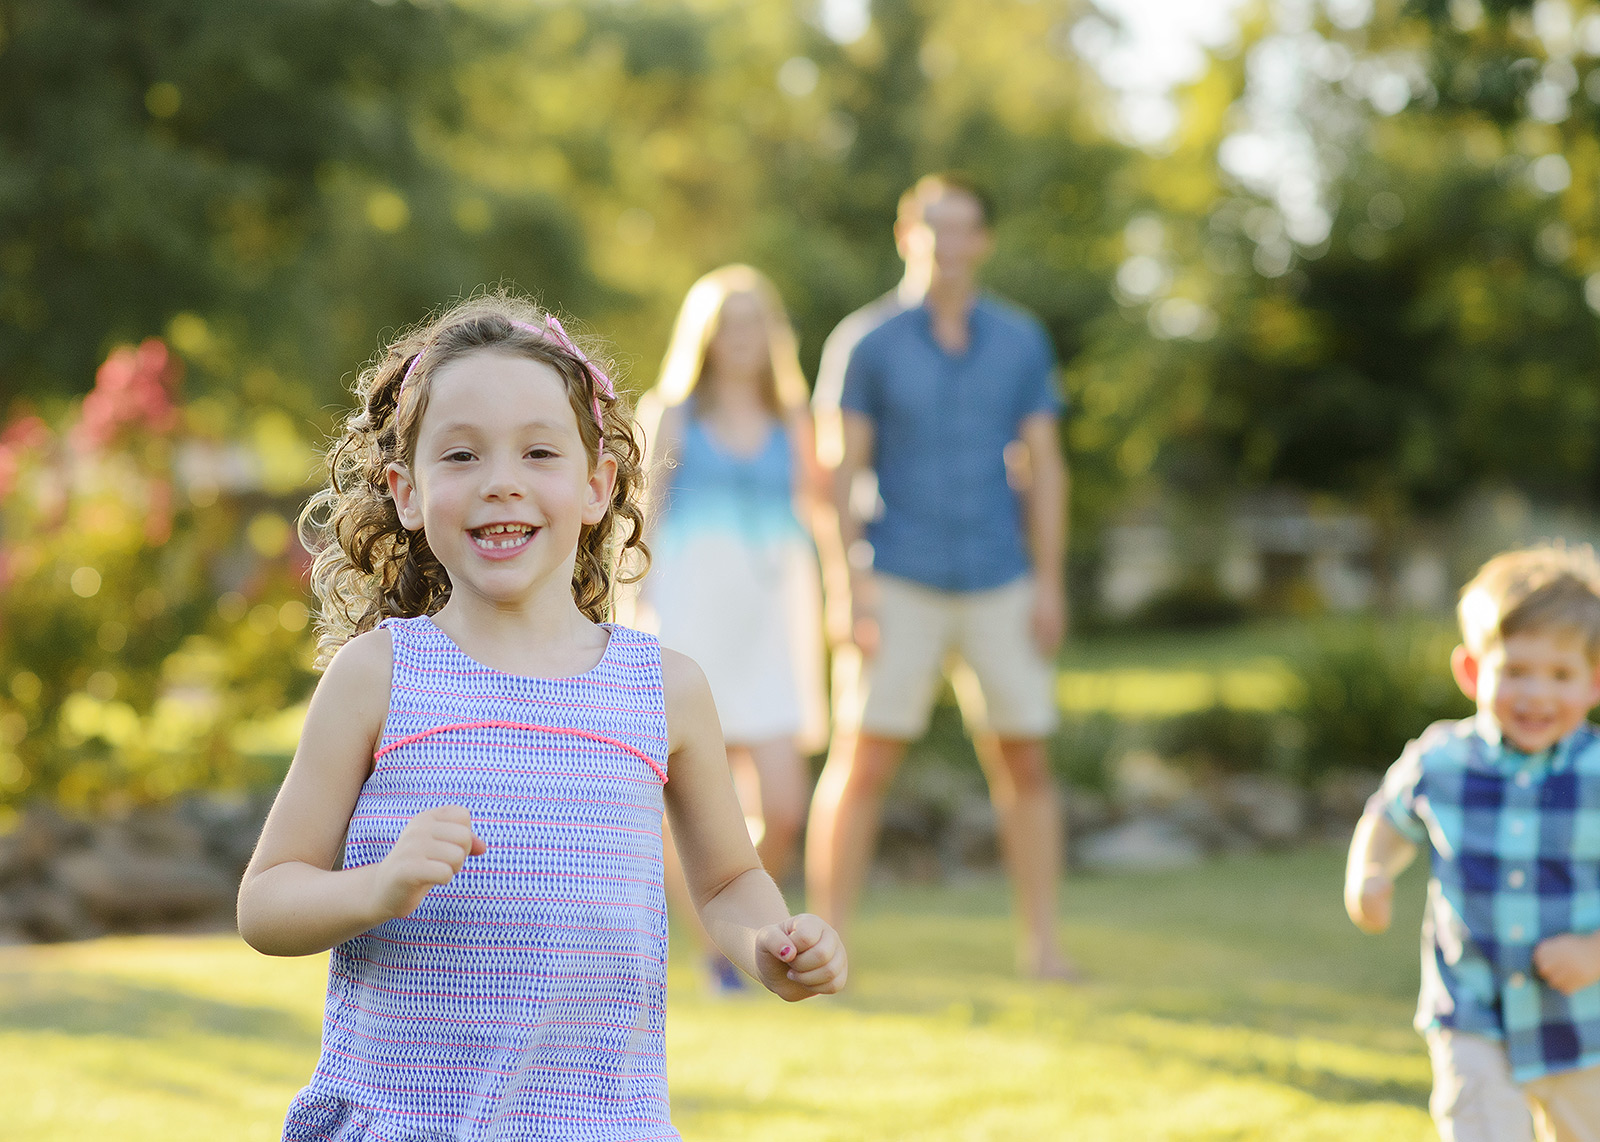 Little girl running in foreground with parents in background in backyard